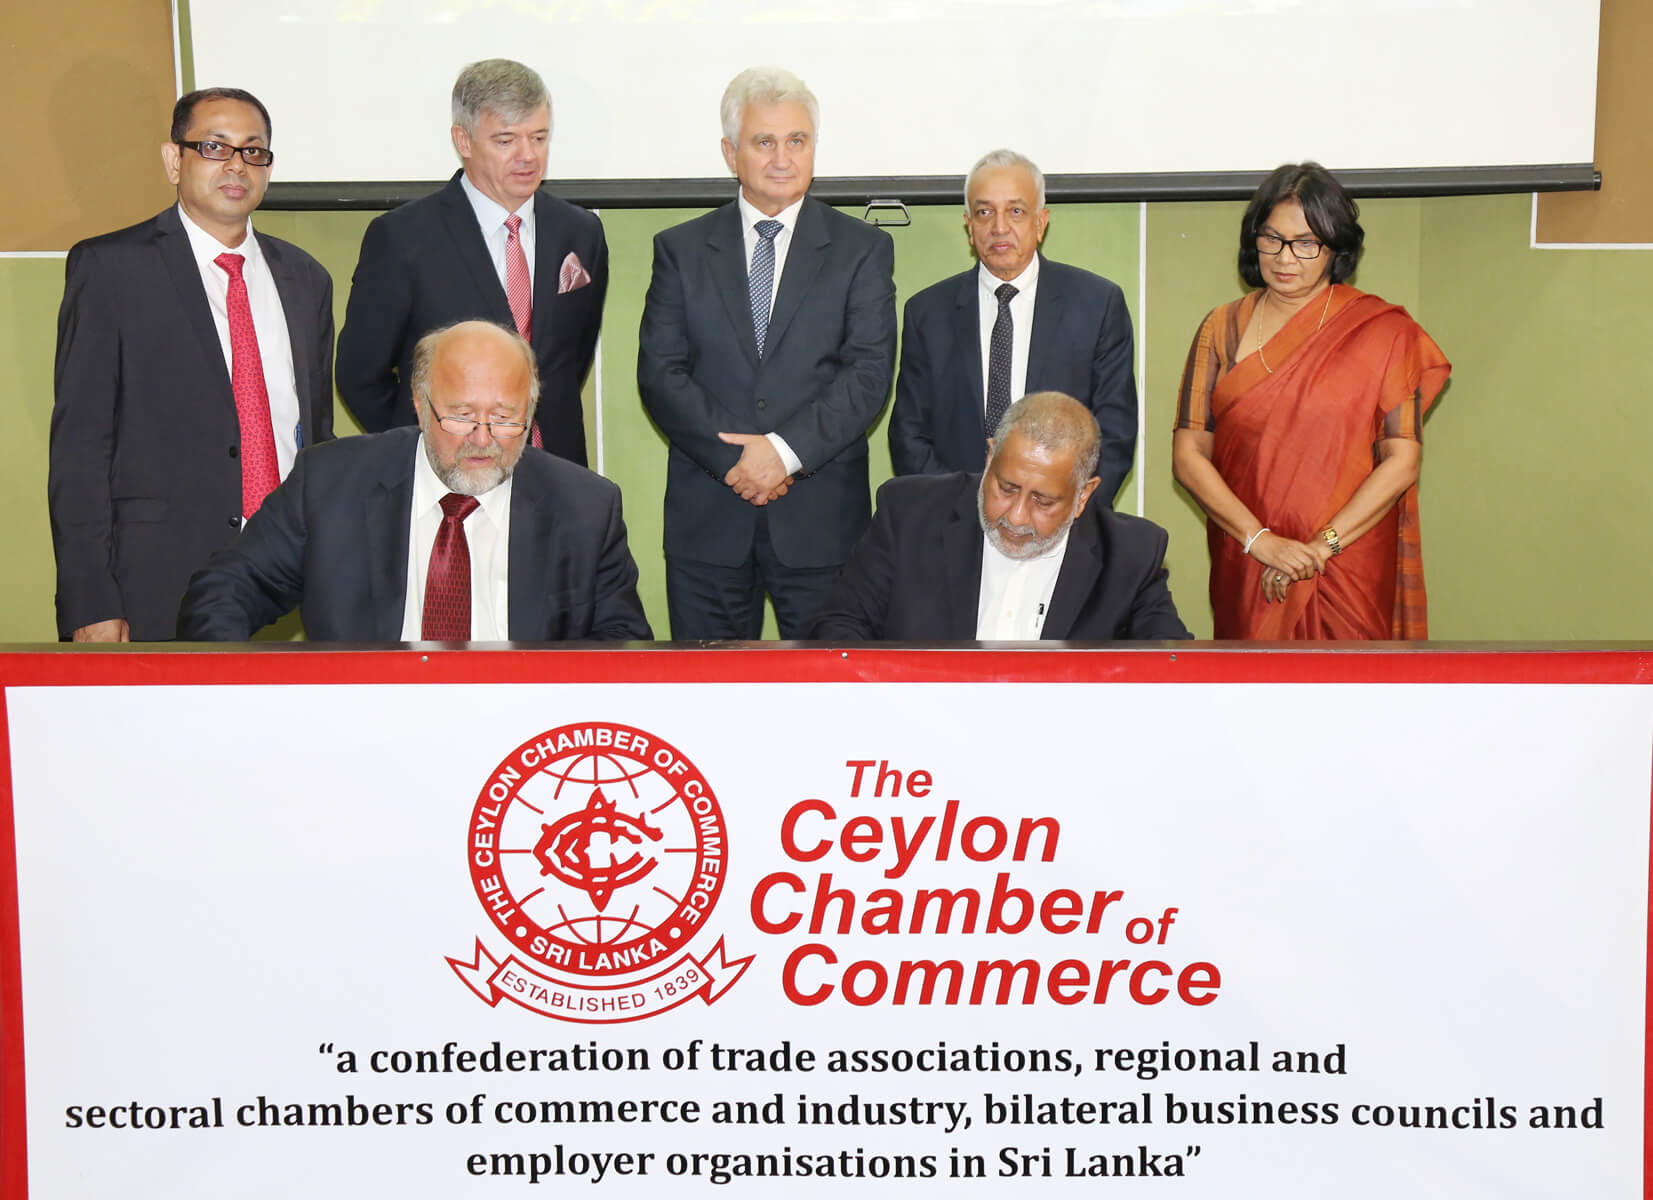 Ceylon Chamber signs MoU with Czech Chamber to strengthen trade, investment and tourism opportunities